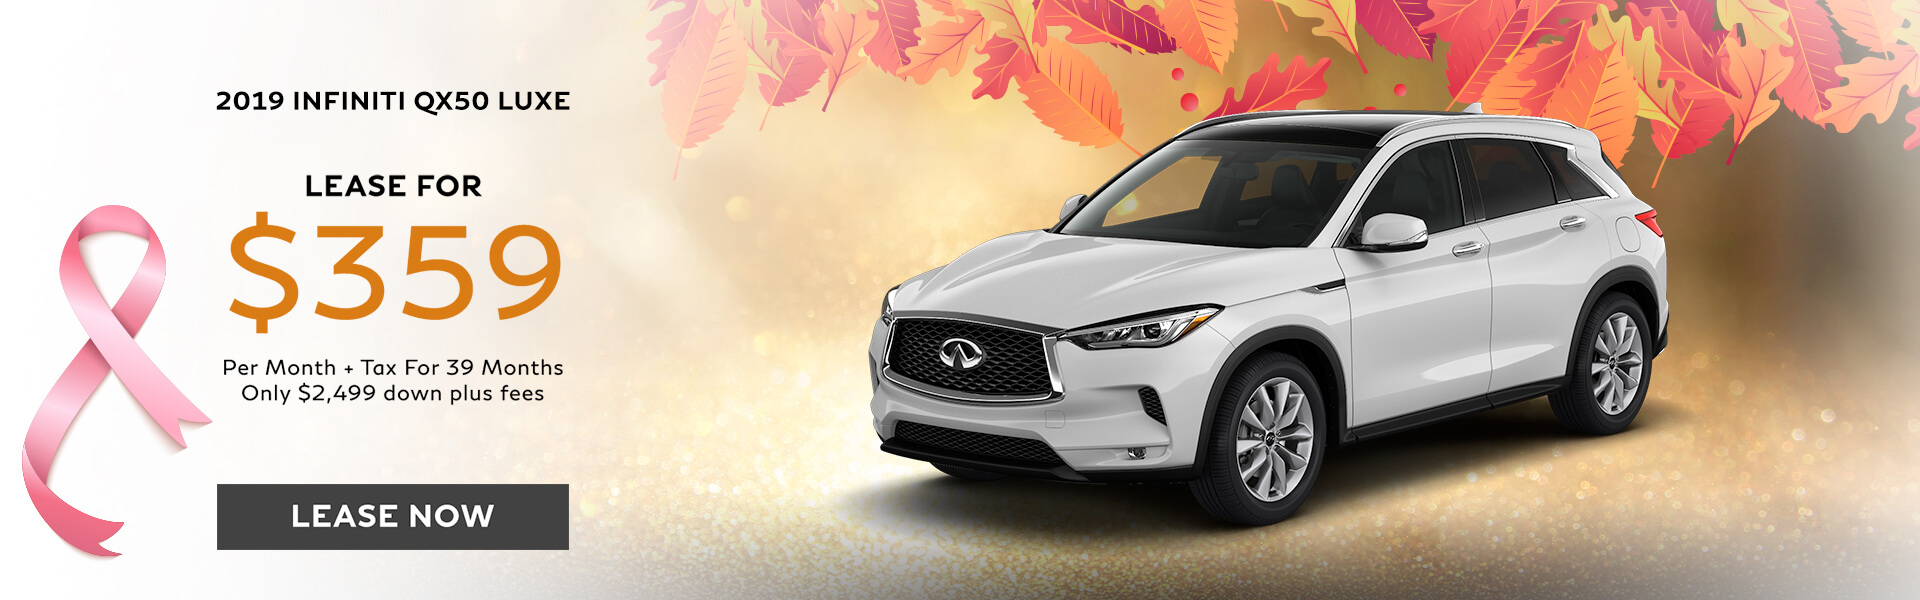 QX50 LUXE - Lease for $359